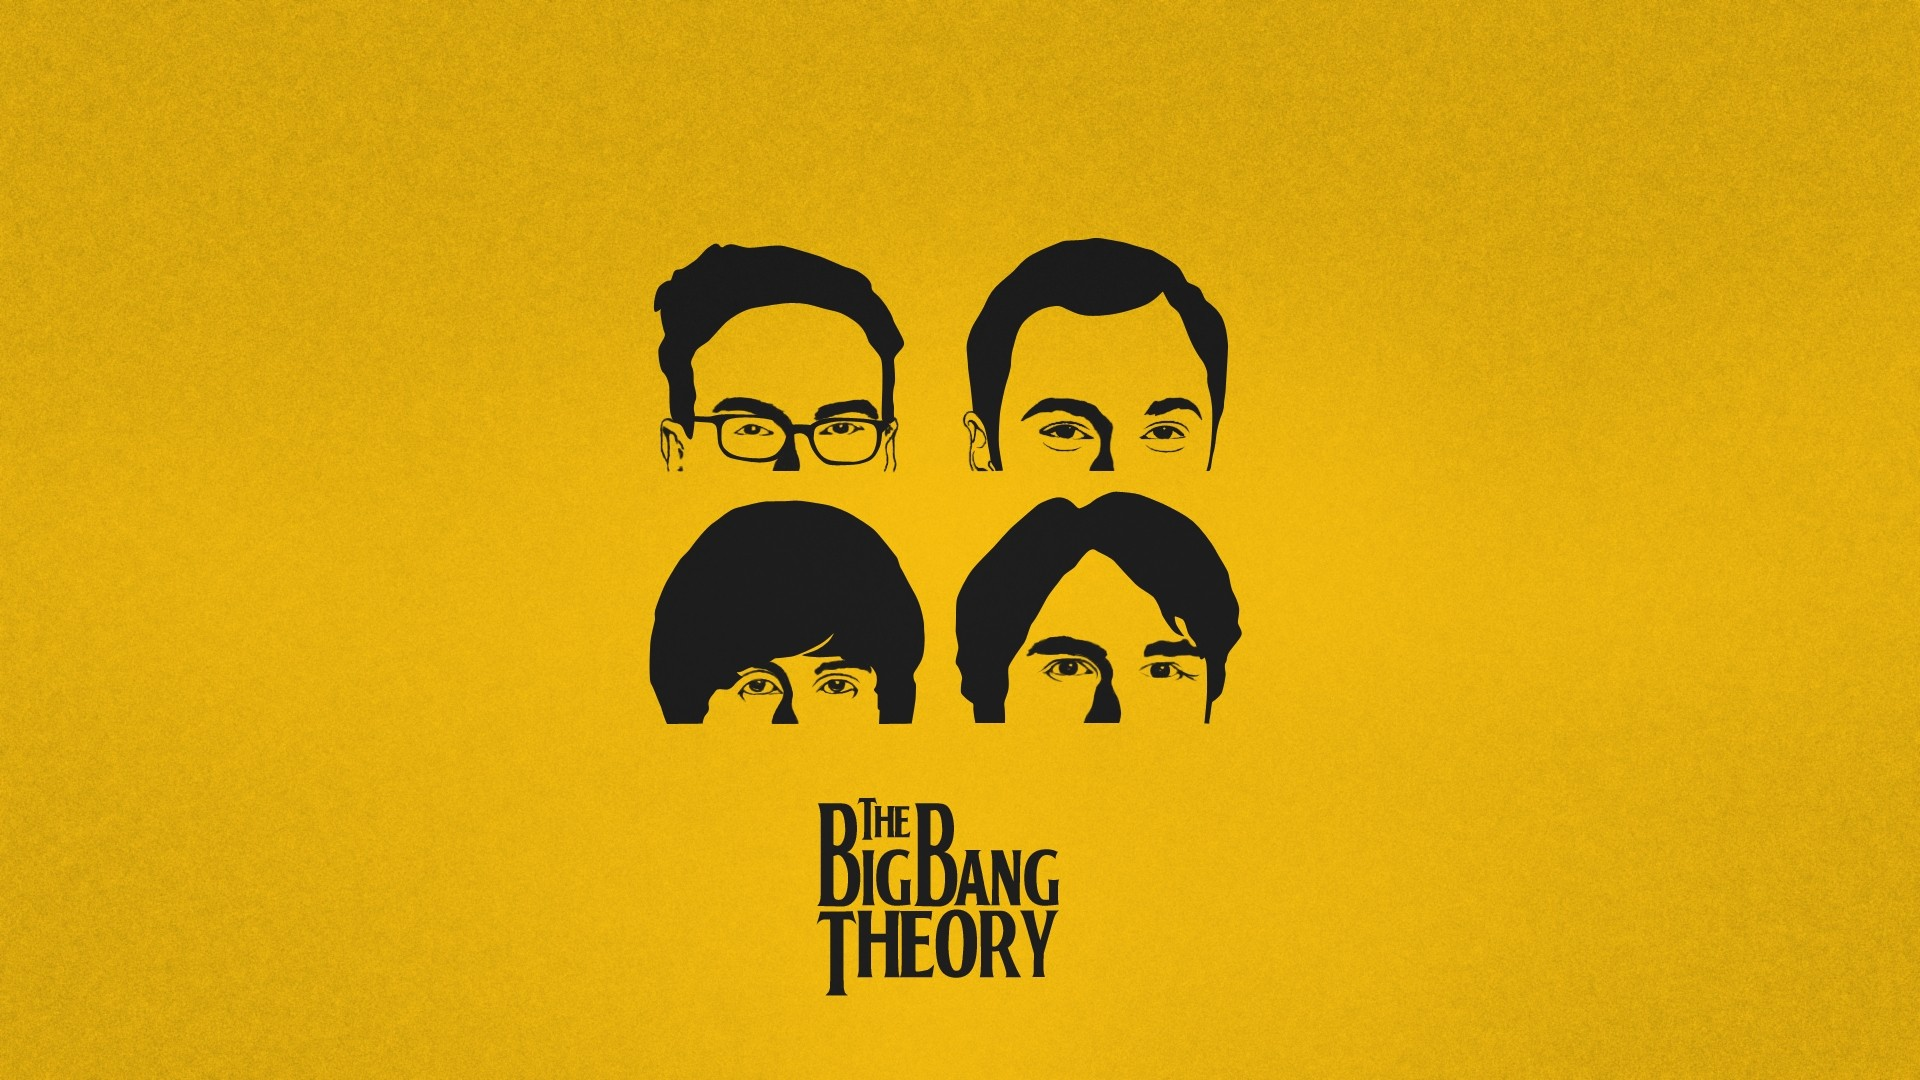 The Beatles Iphone 5 Wallpaper The Big Bang Theory Full Hd Wallpaper And Background Image